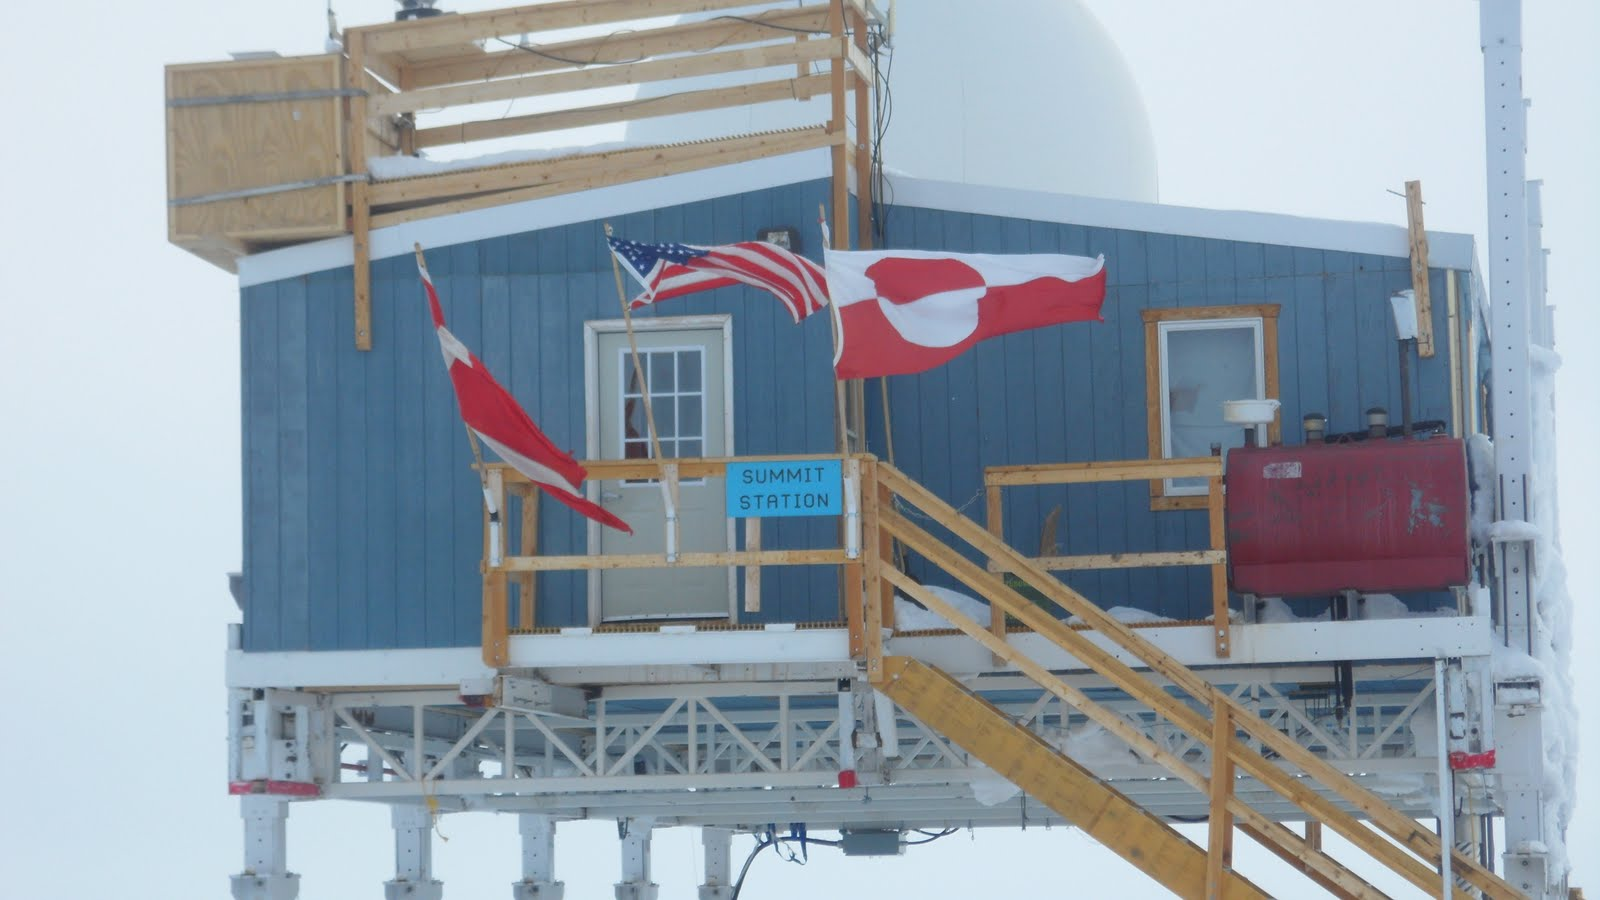 A view of the Big House. The oldest building at Summit. The flags honor the cooperative effort between the United States, Denmark, and Greenland.